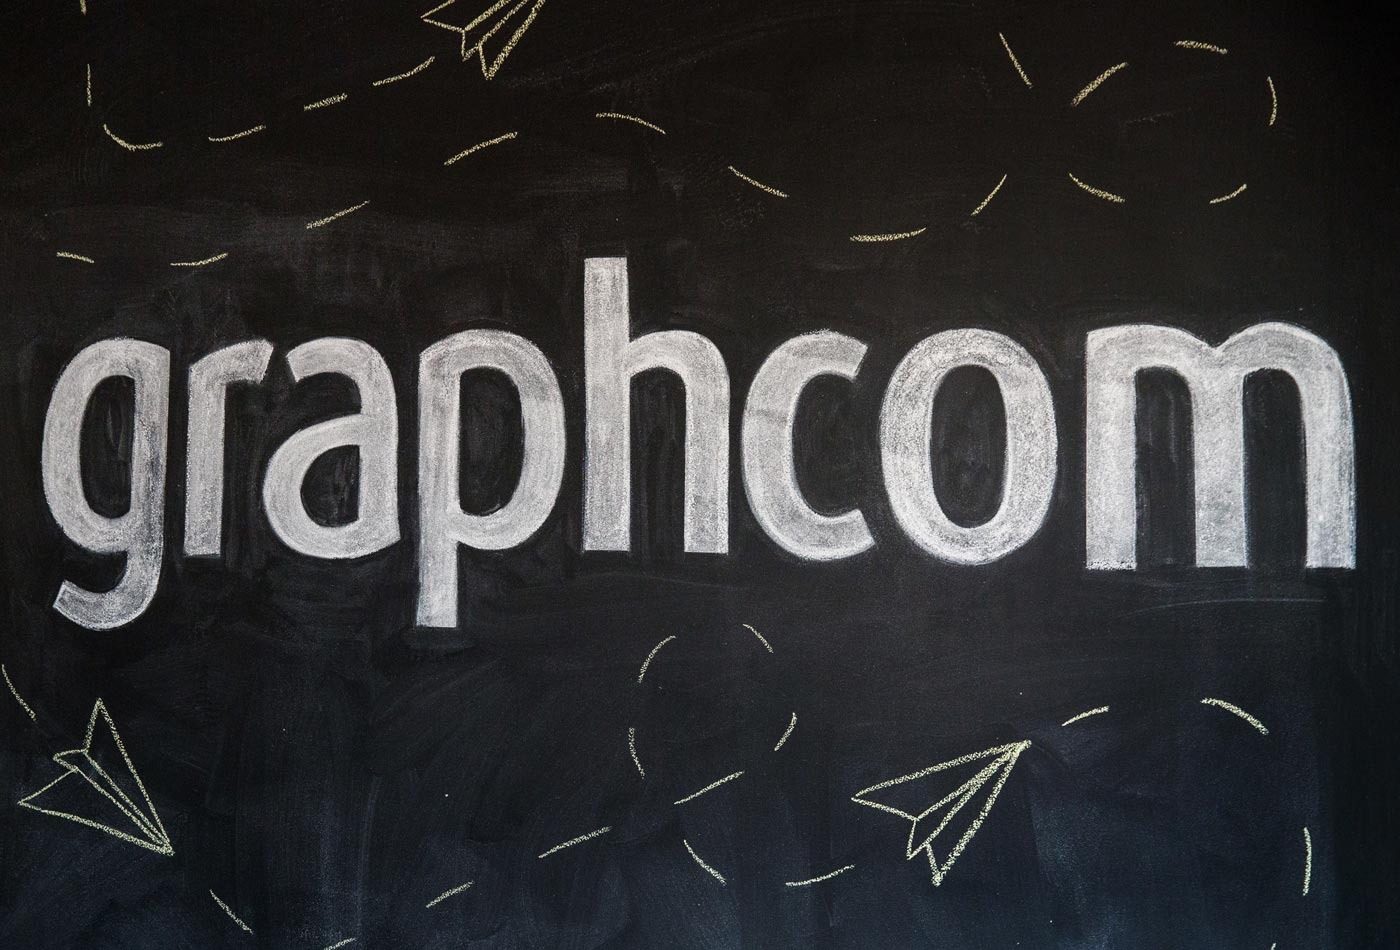 Graphcom: Marketing and Advertising Agency